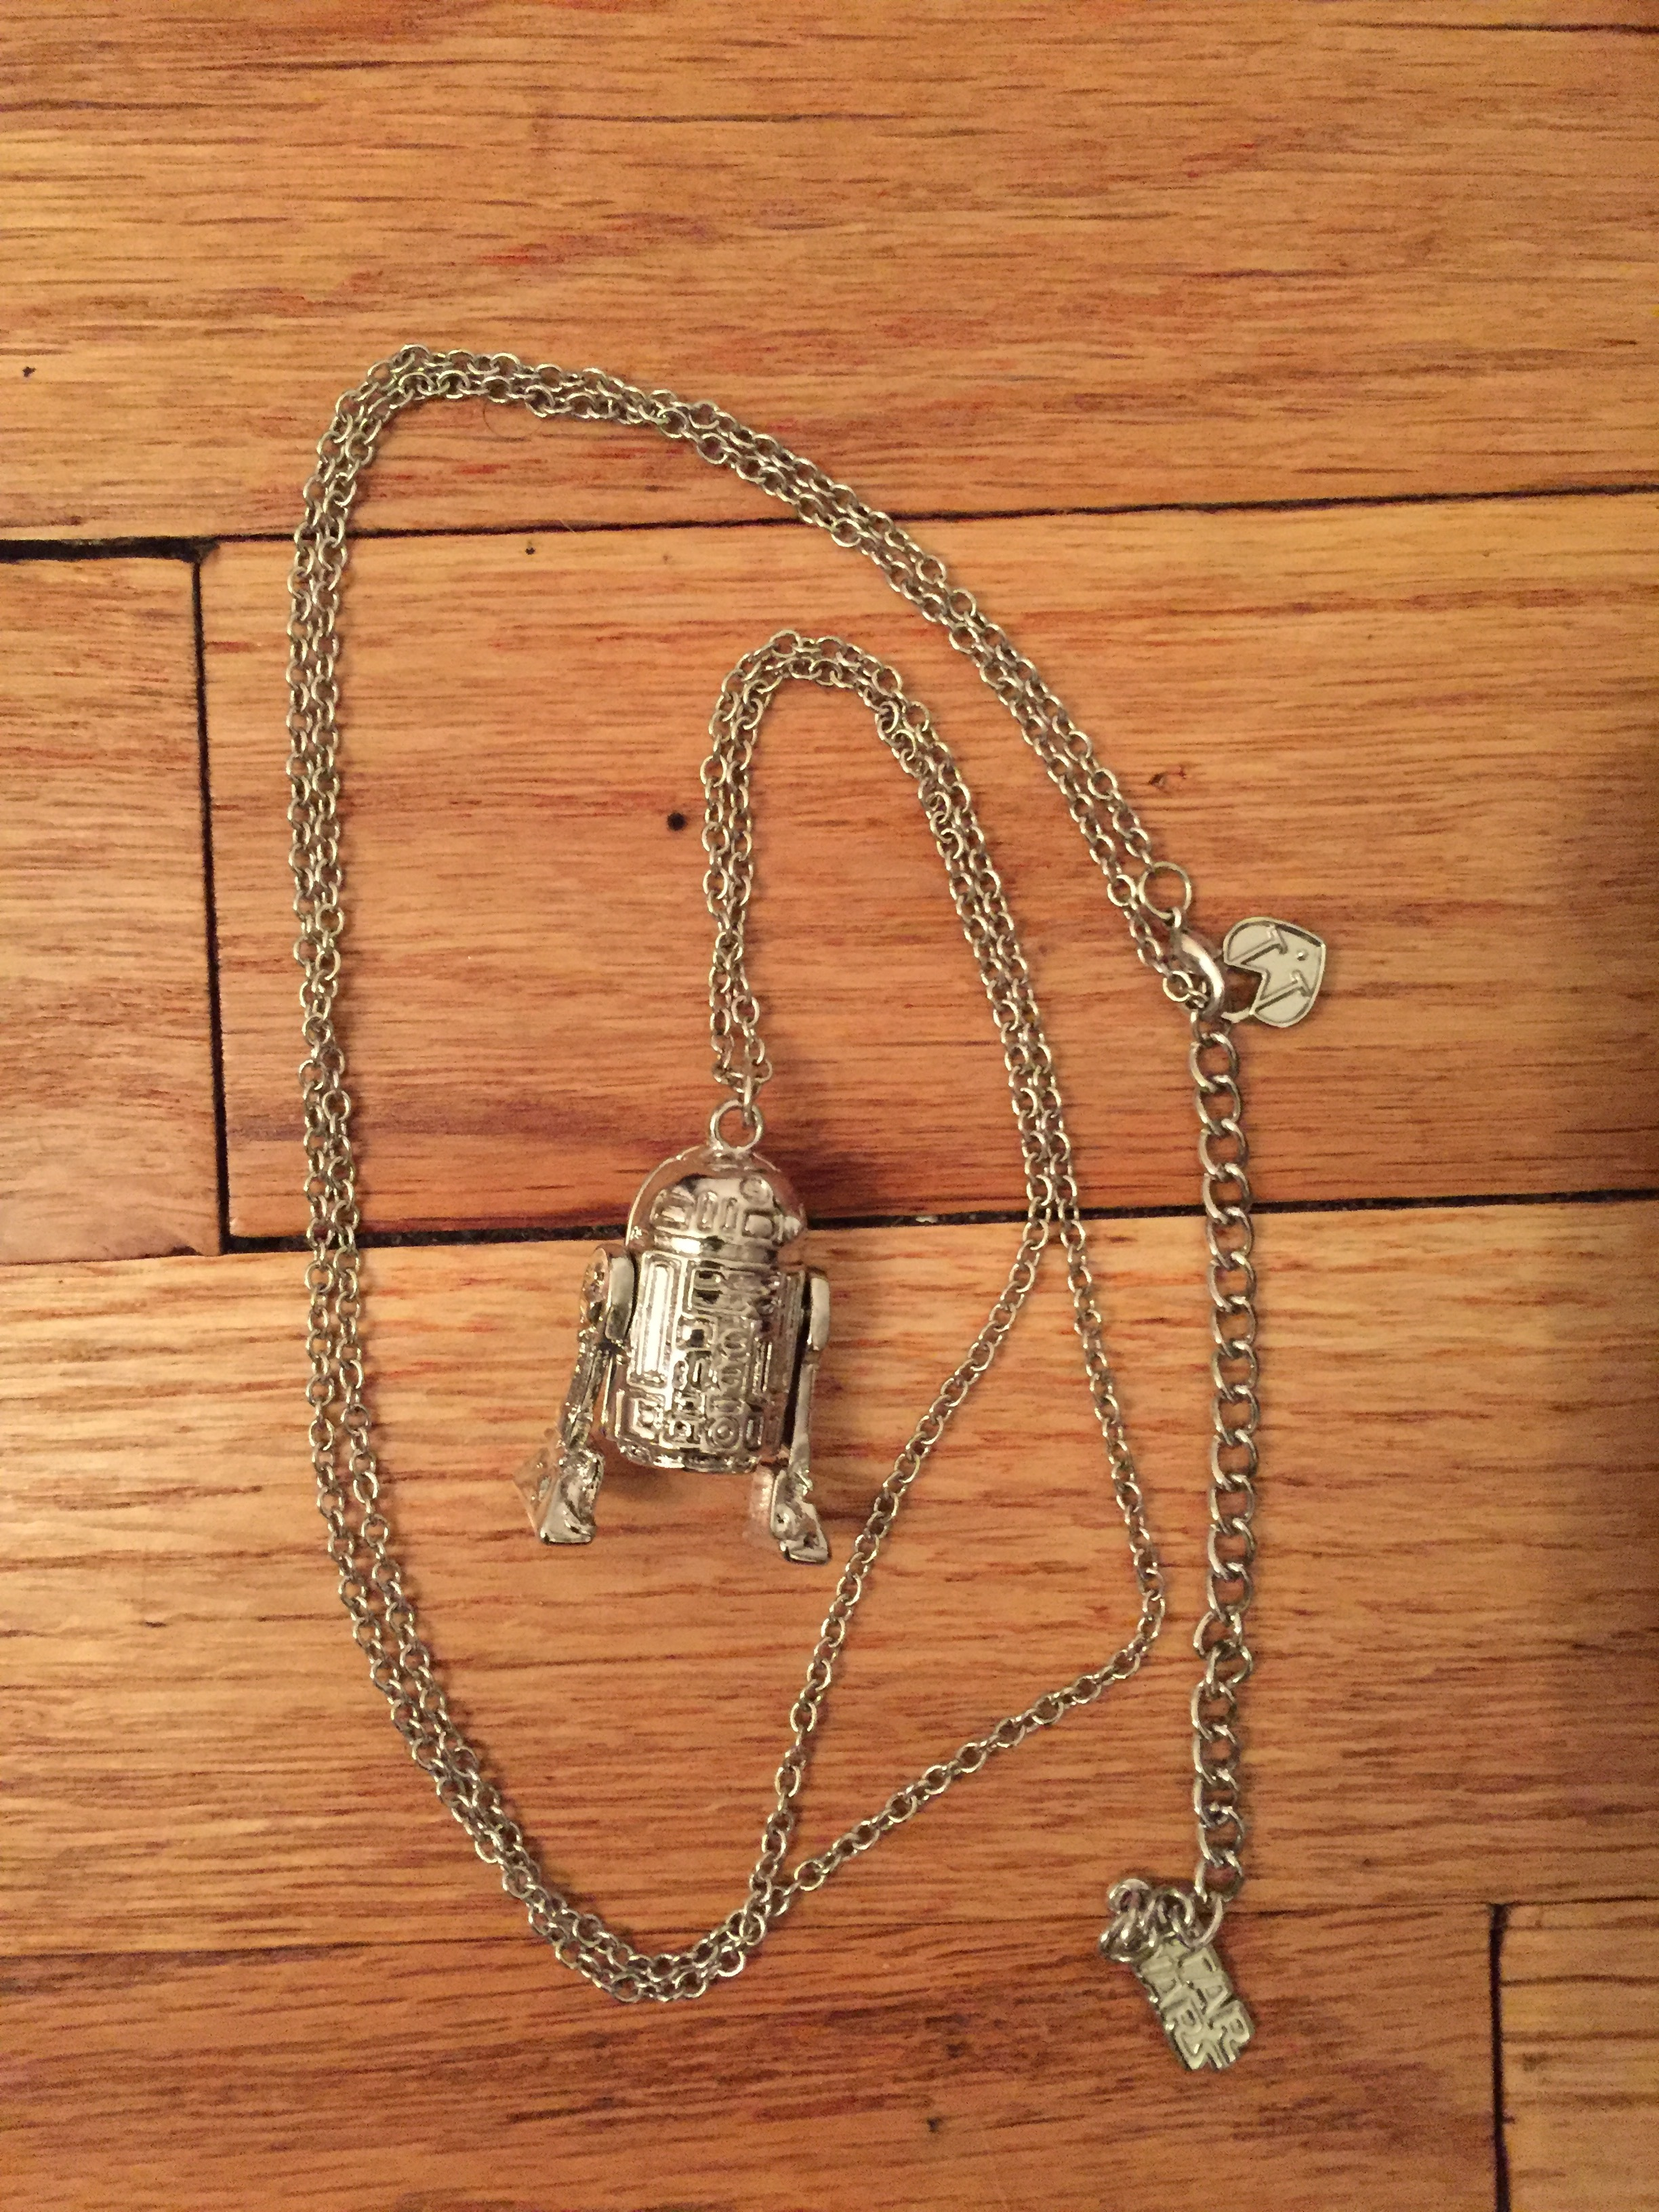 Love & Madness R2D2 necklace